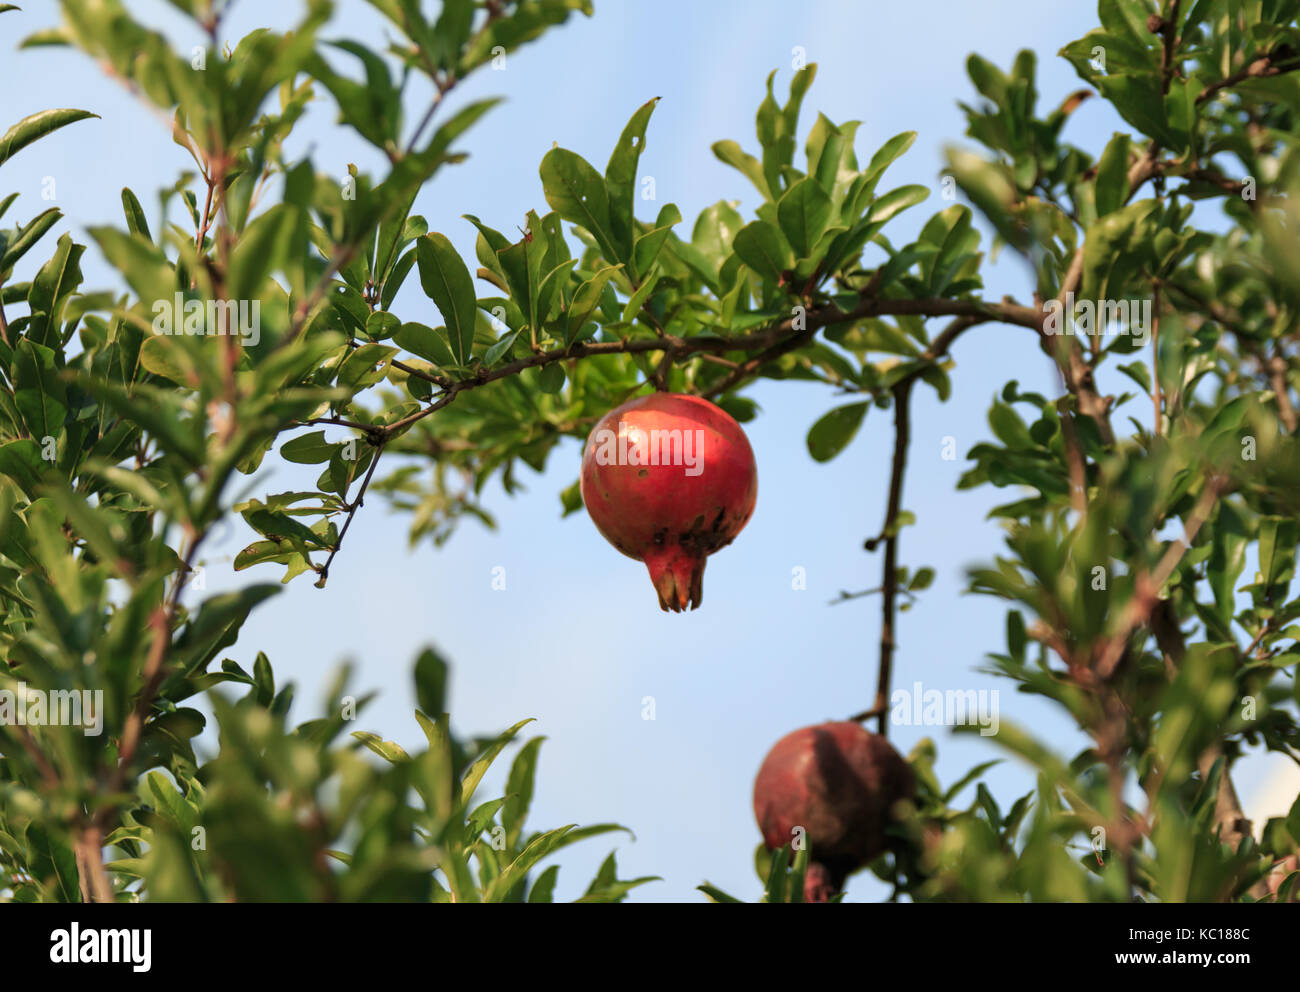 Pomegranate tree in autumn sunny day, with ripe fruits on the branches - Stock Image